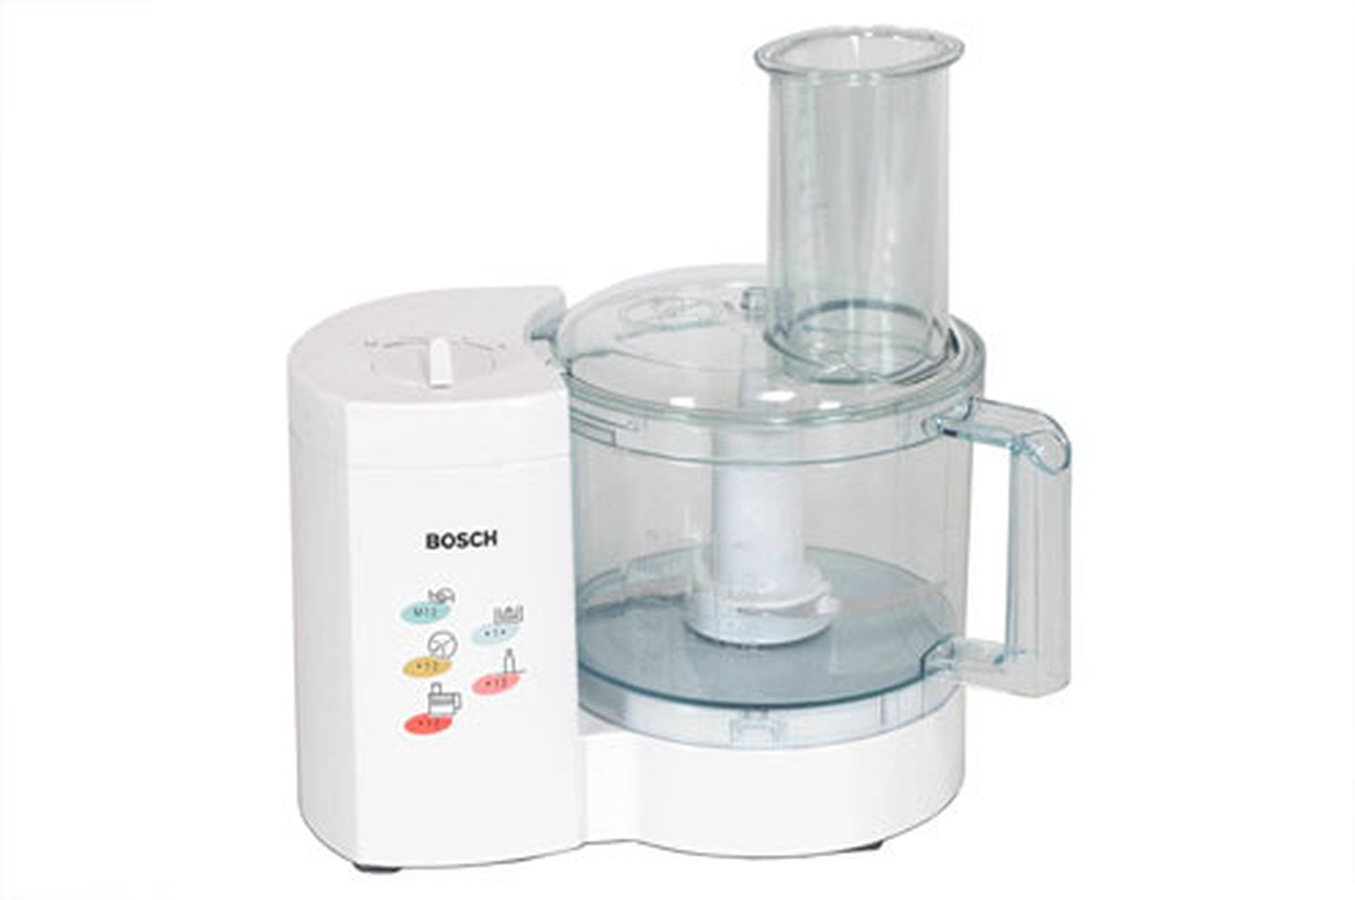 Robot multifonction bosch mcm 2006 mcm2006 2281228 darty for Robot cuisine multifonction bosch